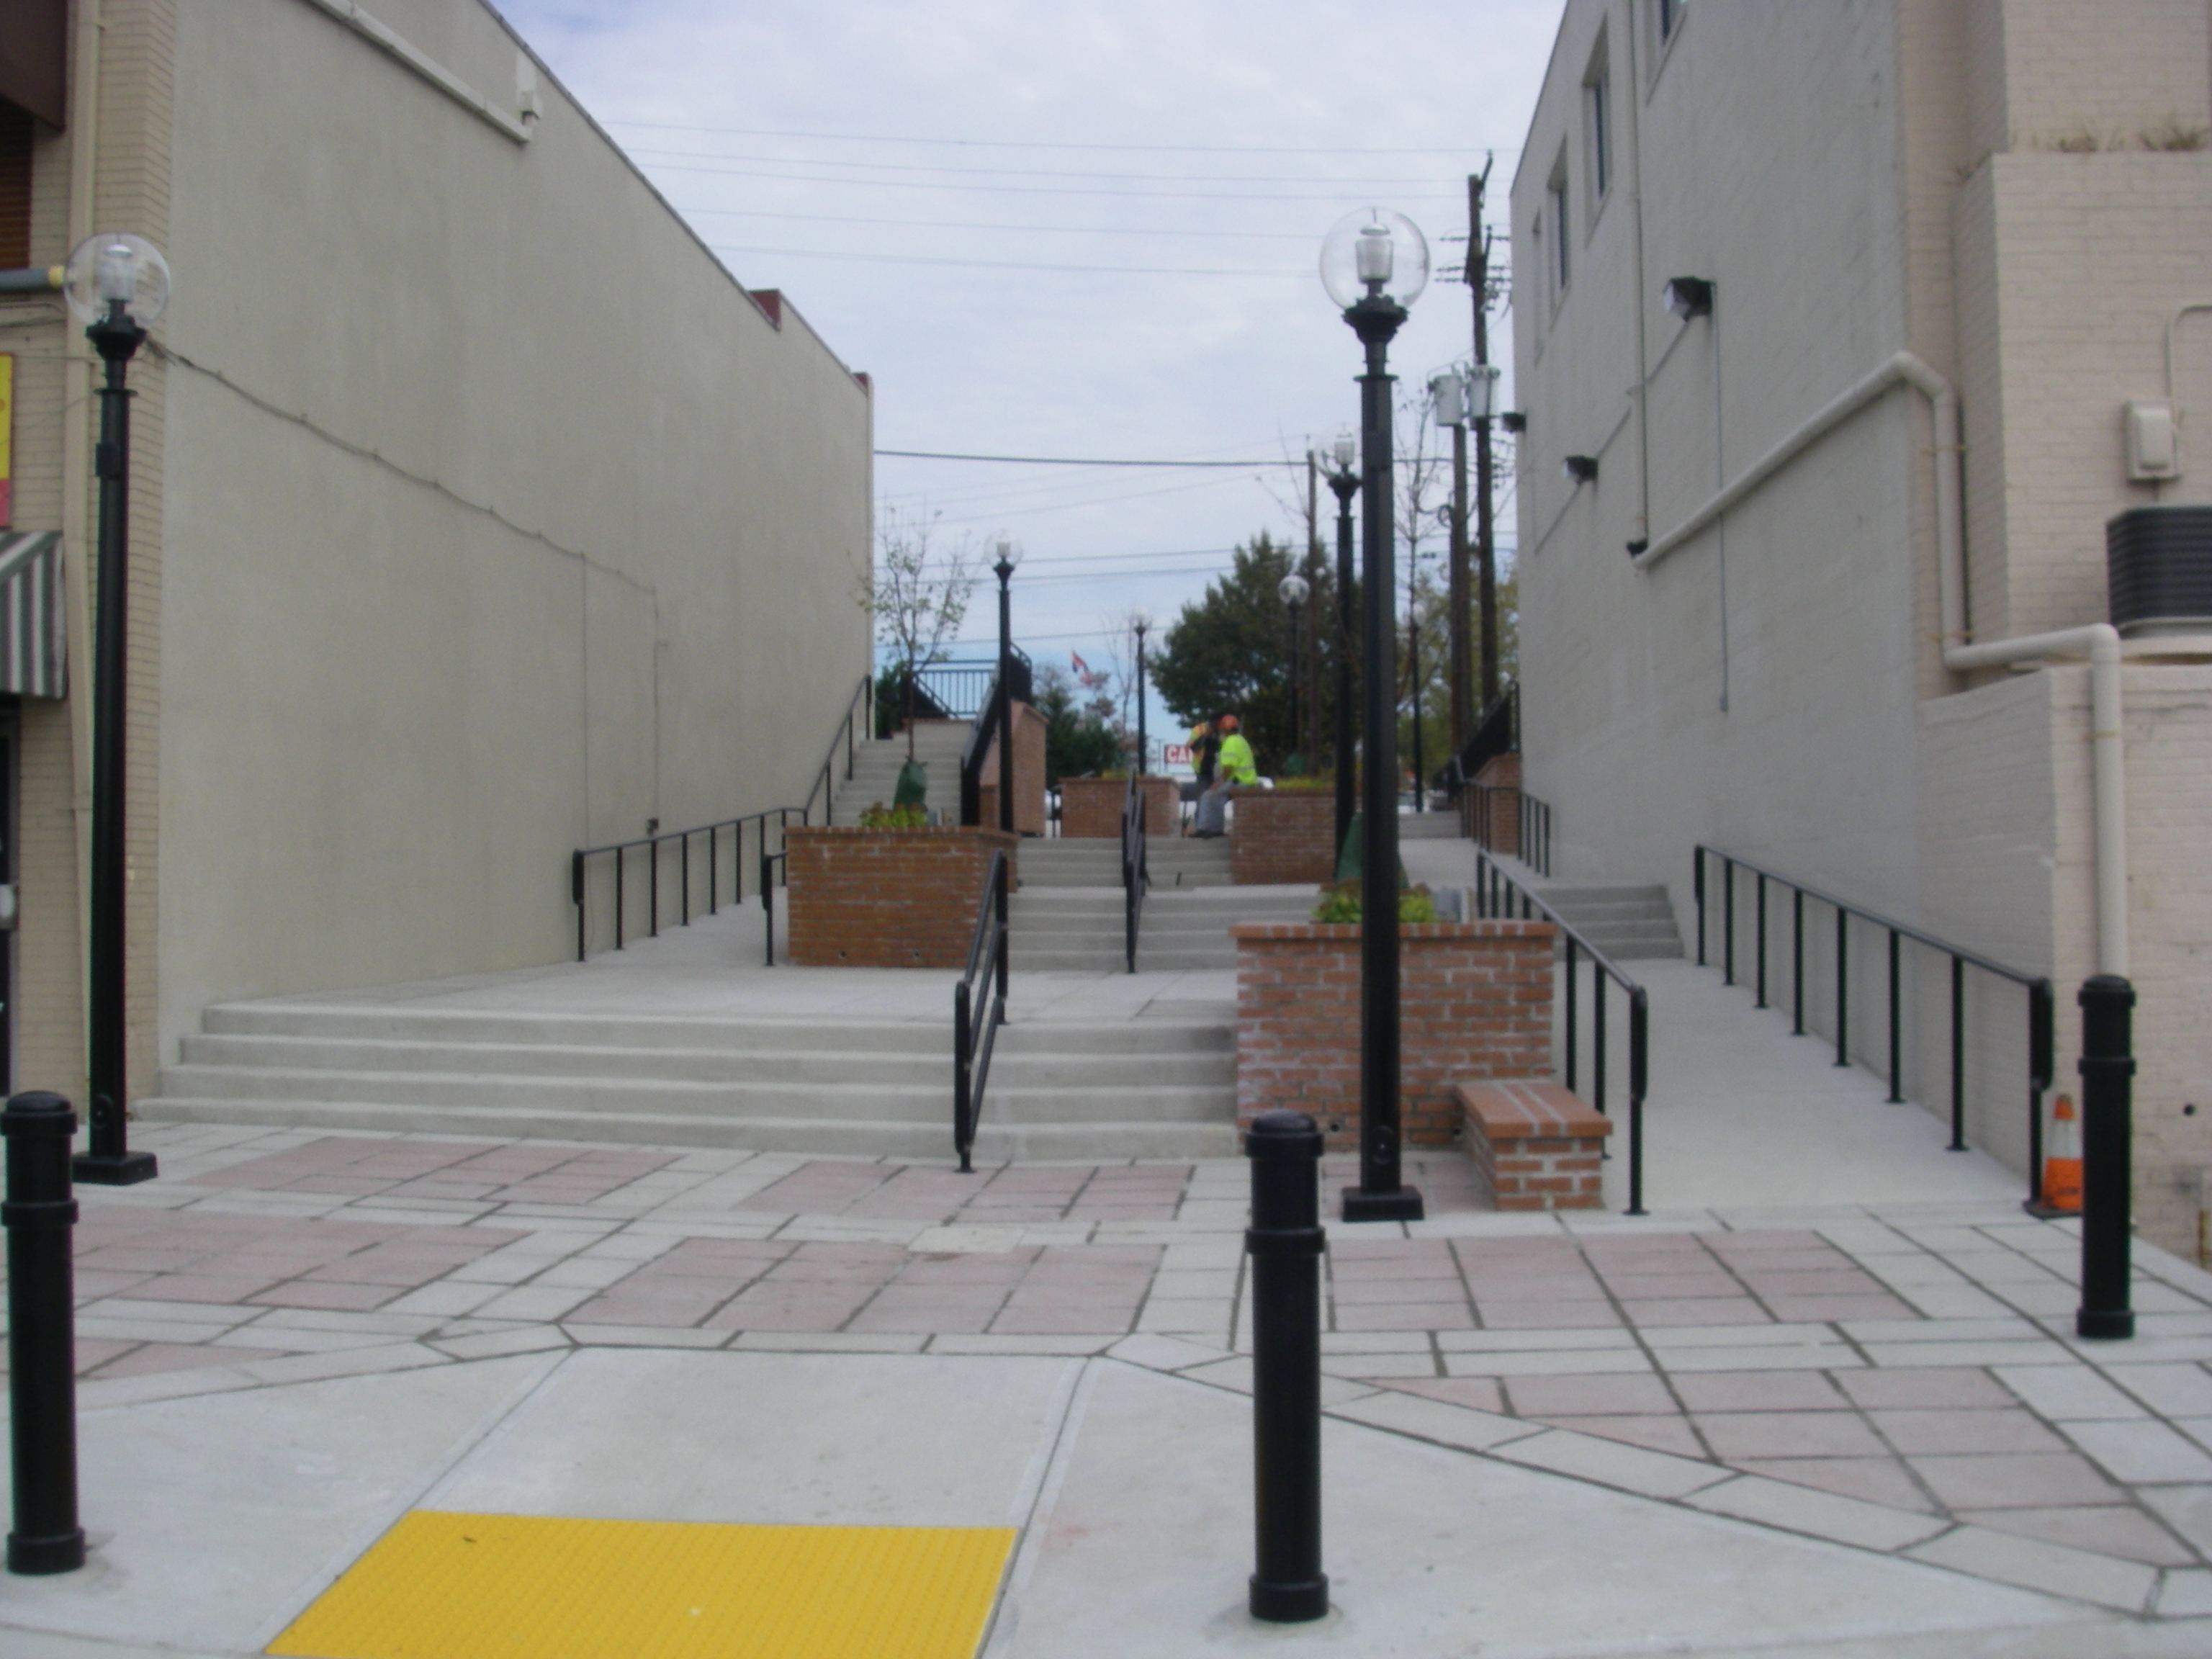 WHEATON TRIANGLE PEDESTRIAN WALKWAY